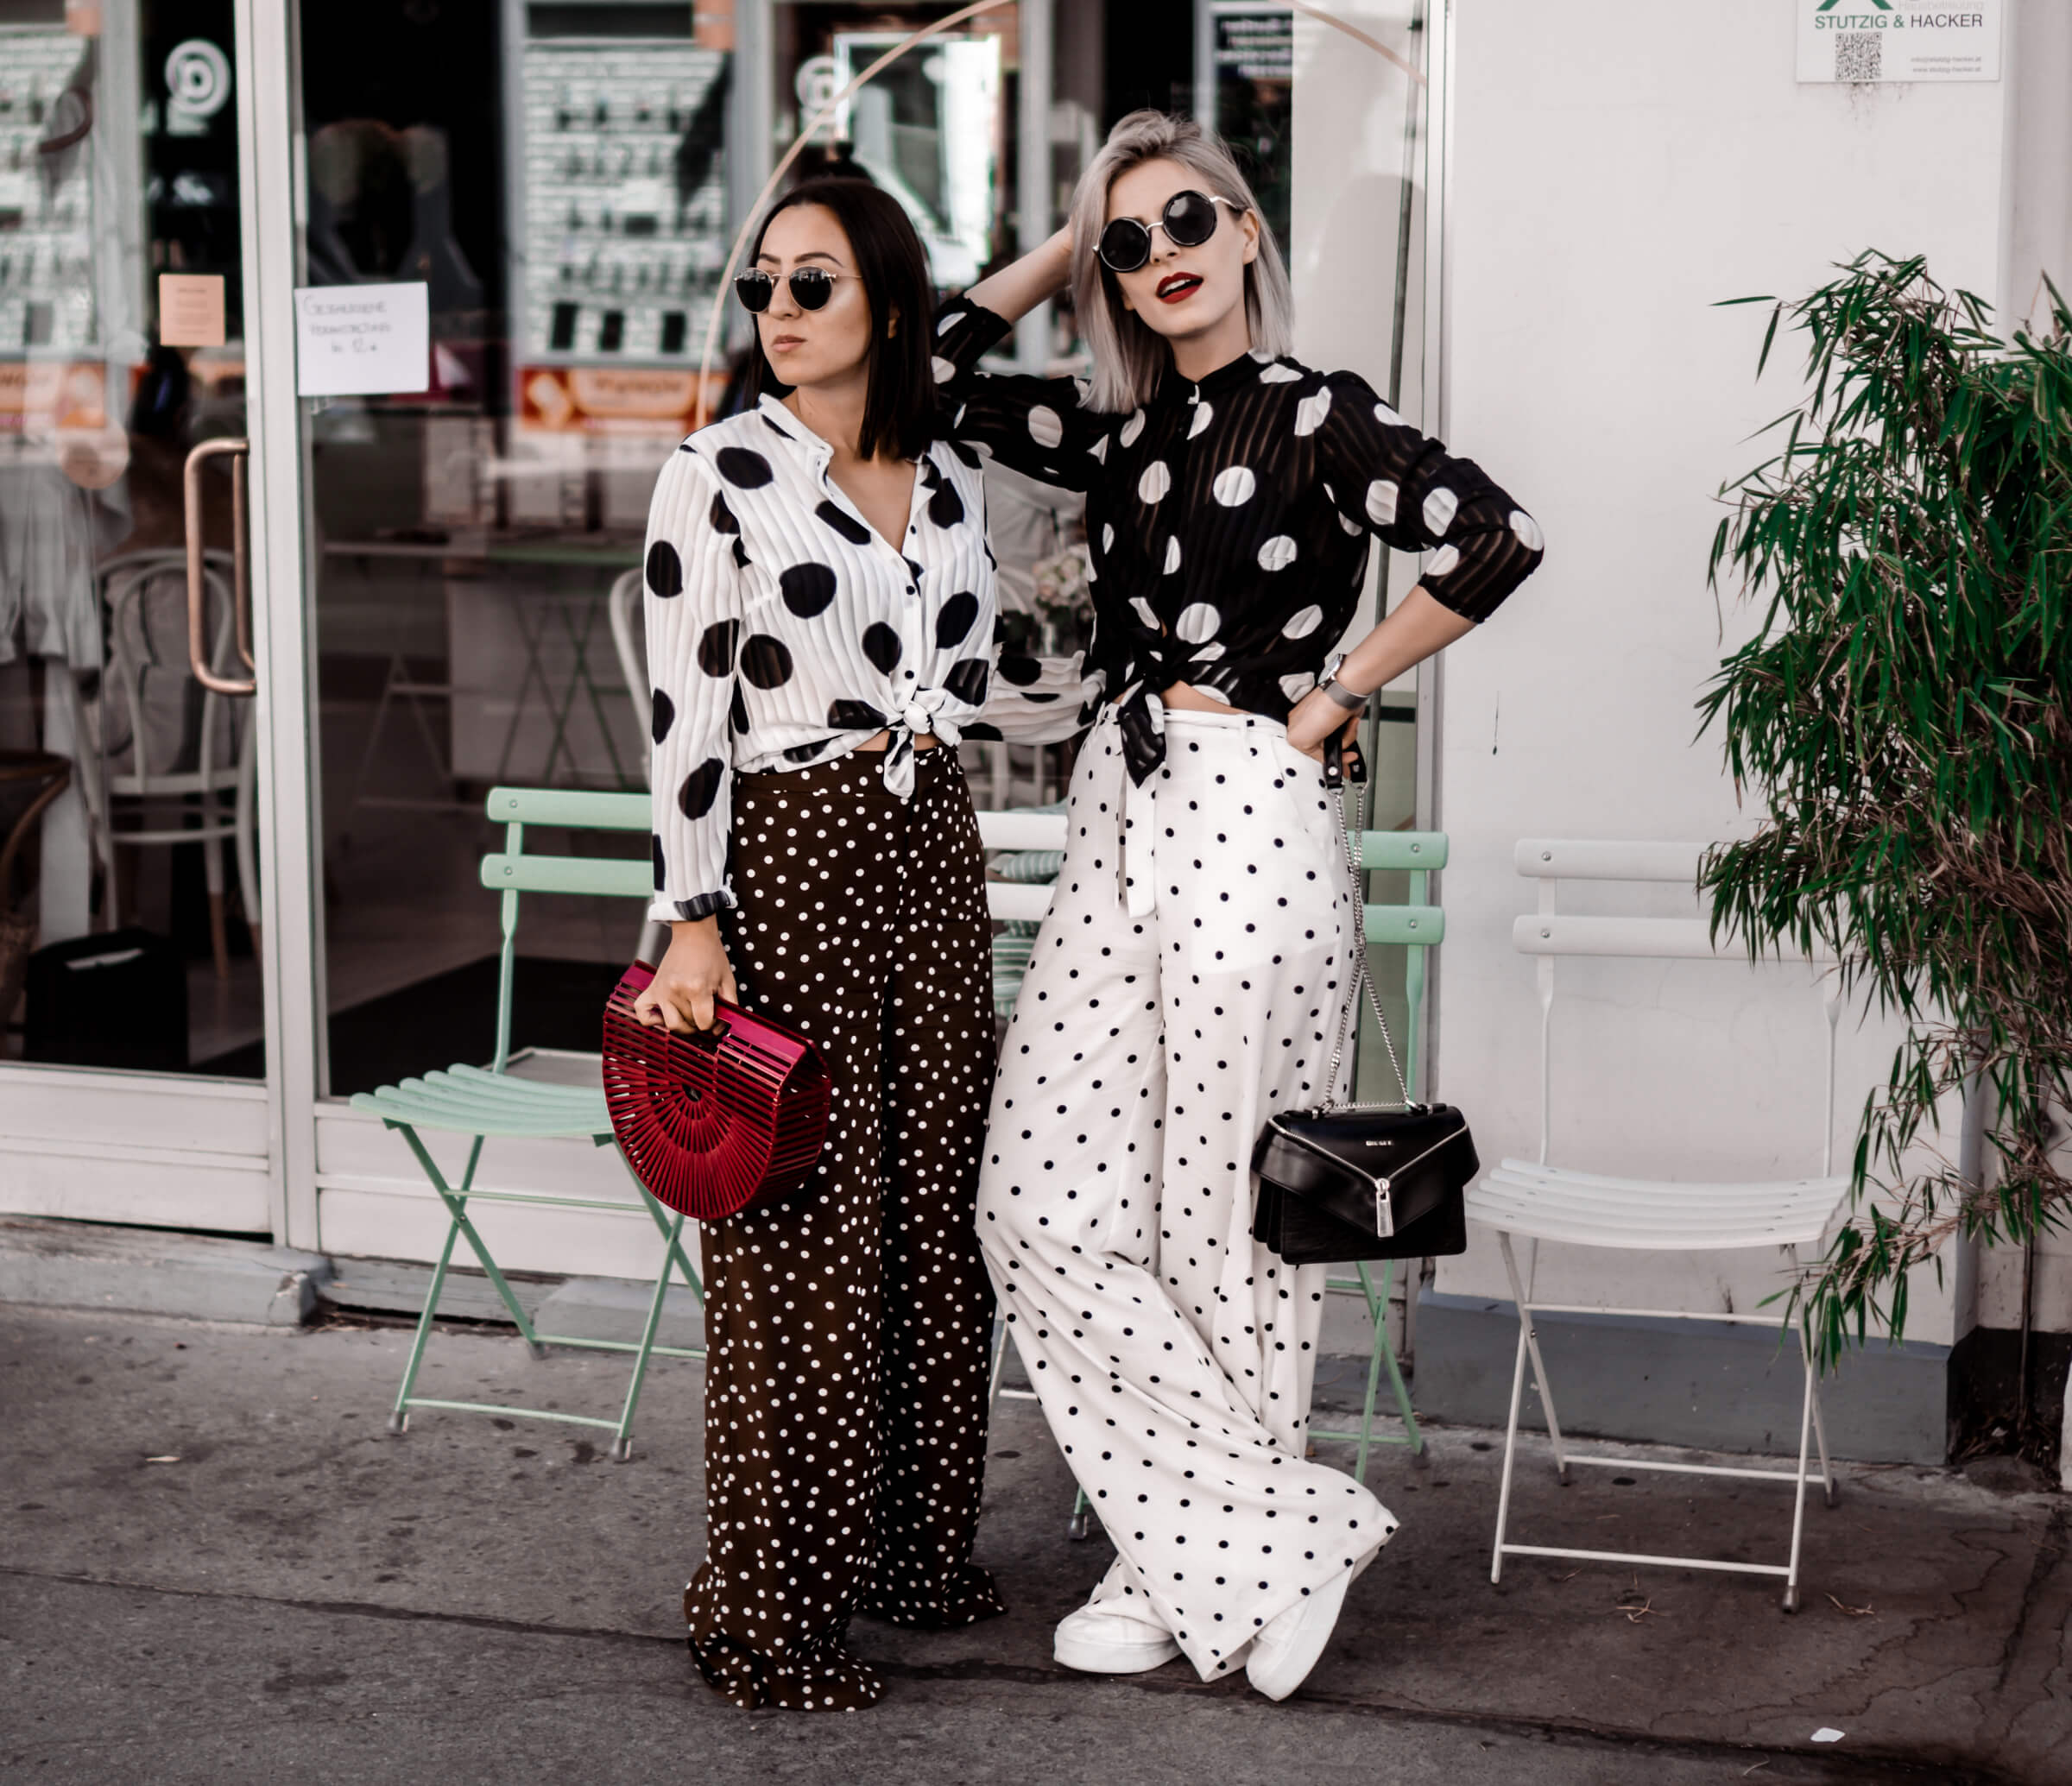 Transparency and dots trend